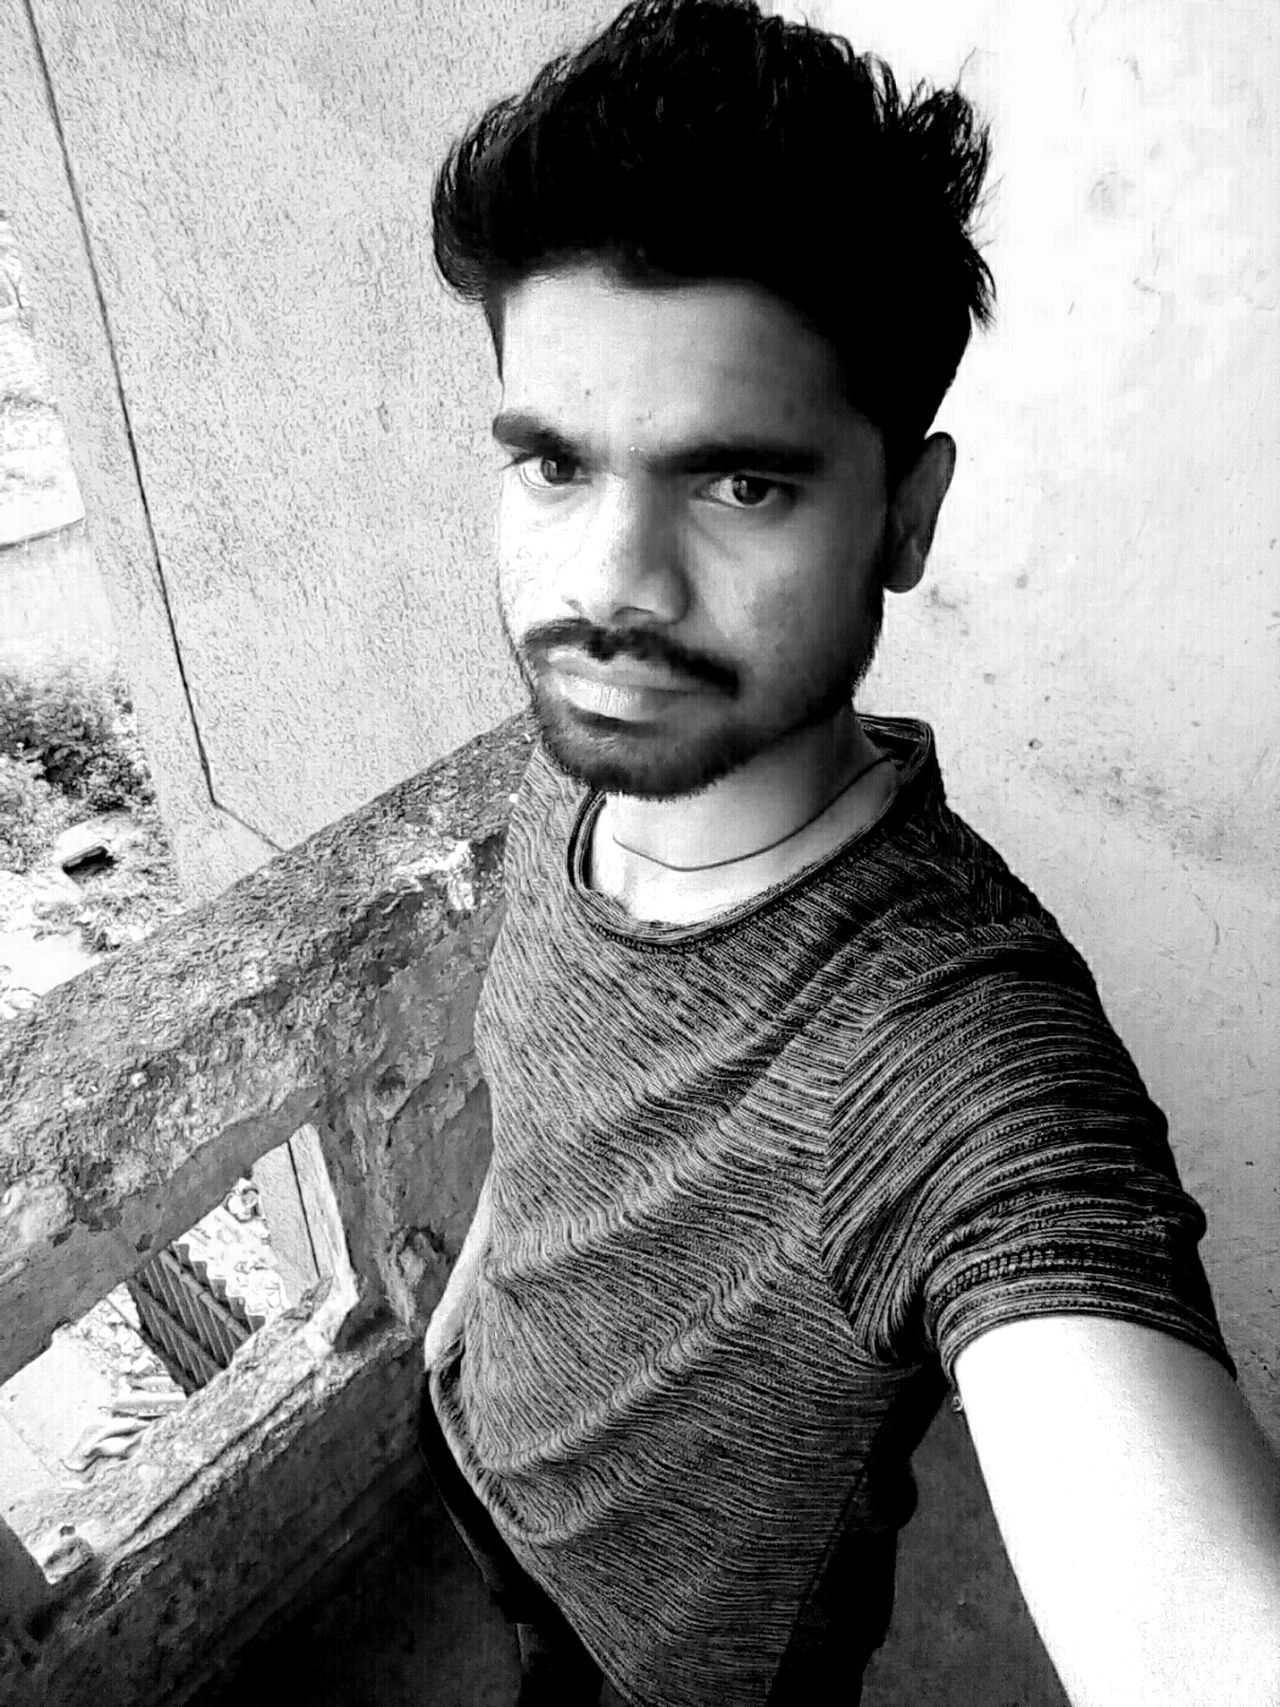 Good Afternoon Guyz Looking At Camera One Person Human Body Part Love Is In The Air ':/5+(:'''/*''@'-@$3'@$$ Life Is A Beach Face Paint Bajranbali I'm Rajendra Crazy Boy@@@@@@@@@@@@com 💪💪💪💪💪💪 Loveing Him ❤ Love To Take Photos ❤ .my Bestfriend And I  Friends :'(:):?96@,((6(6')95@$/5((<=(€)('? Blackandwhite Photography Drinking Glass